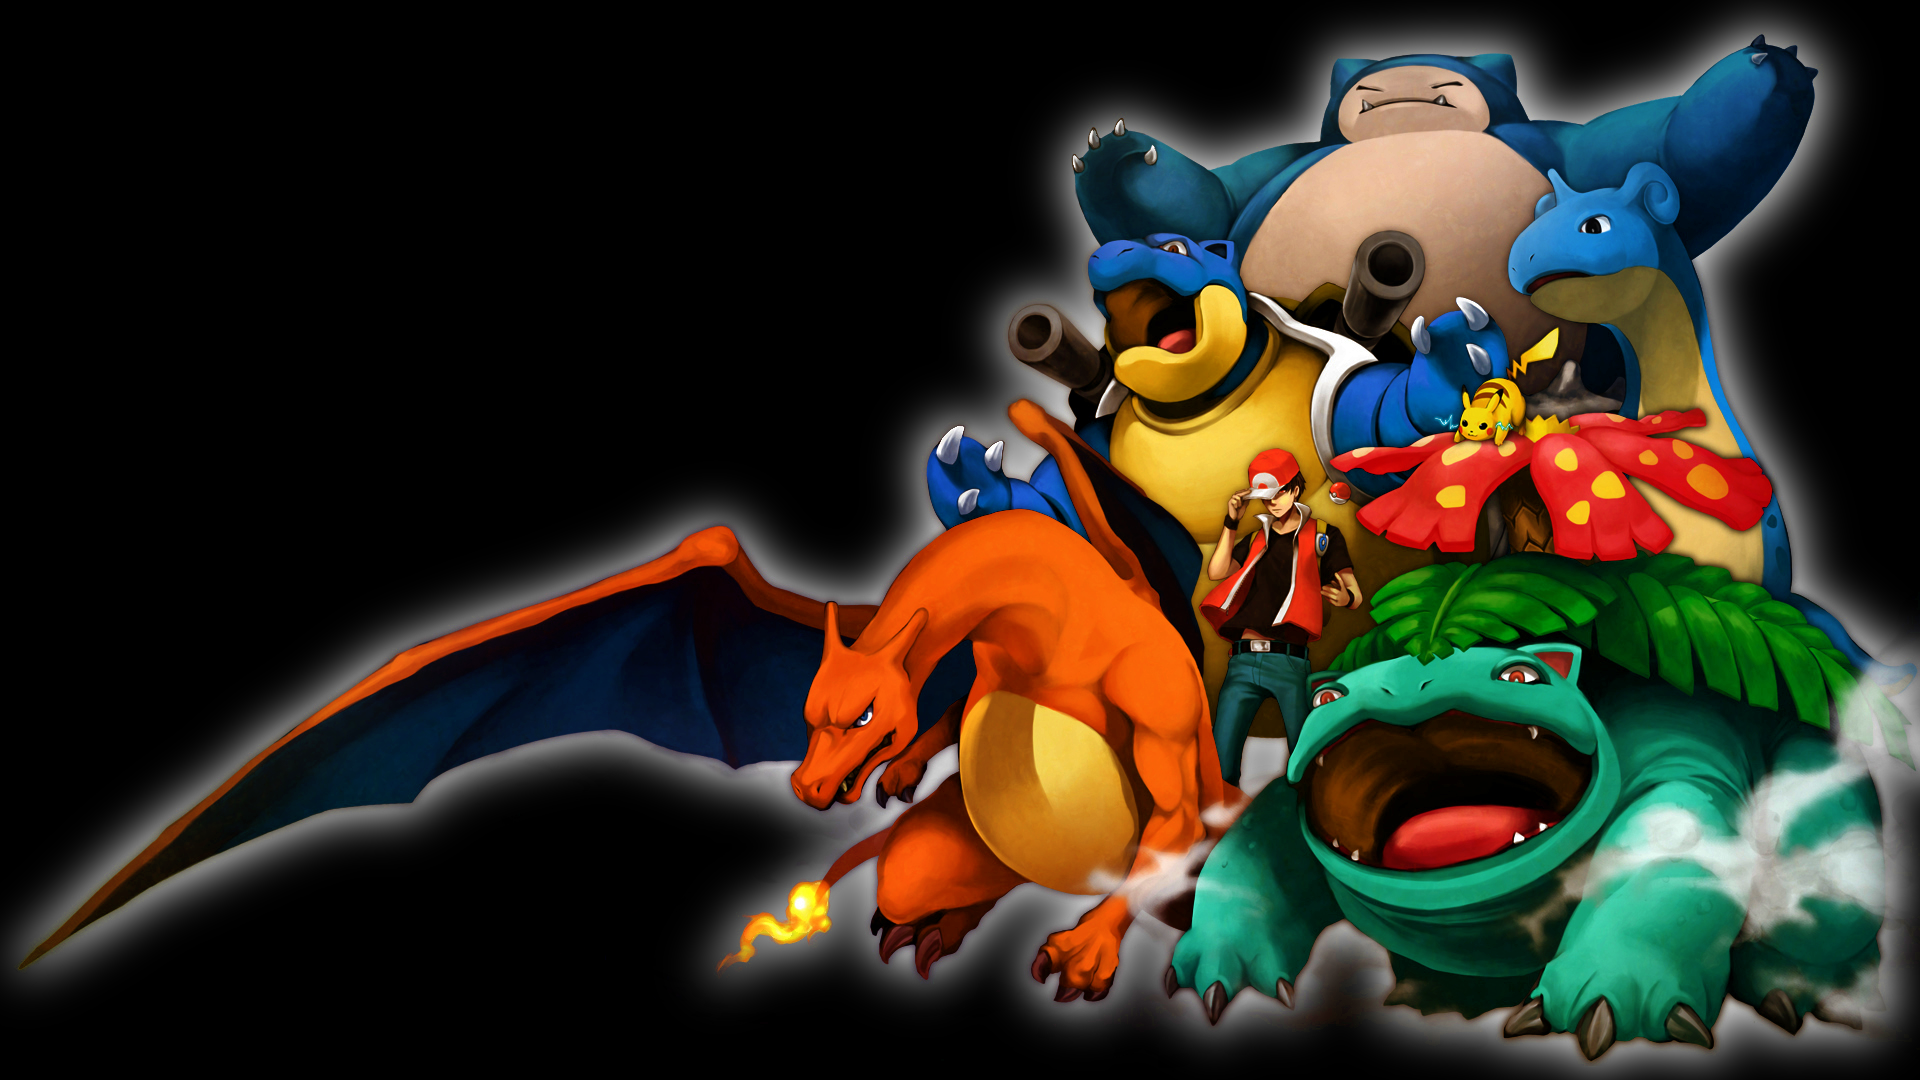 pokemon wallpaper HD for desktop 2 1920x1080